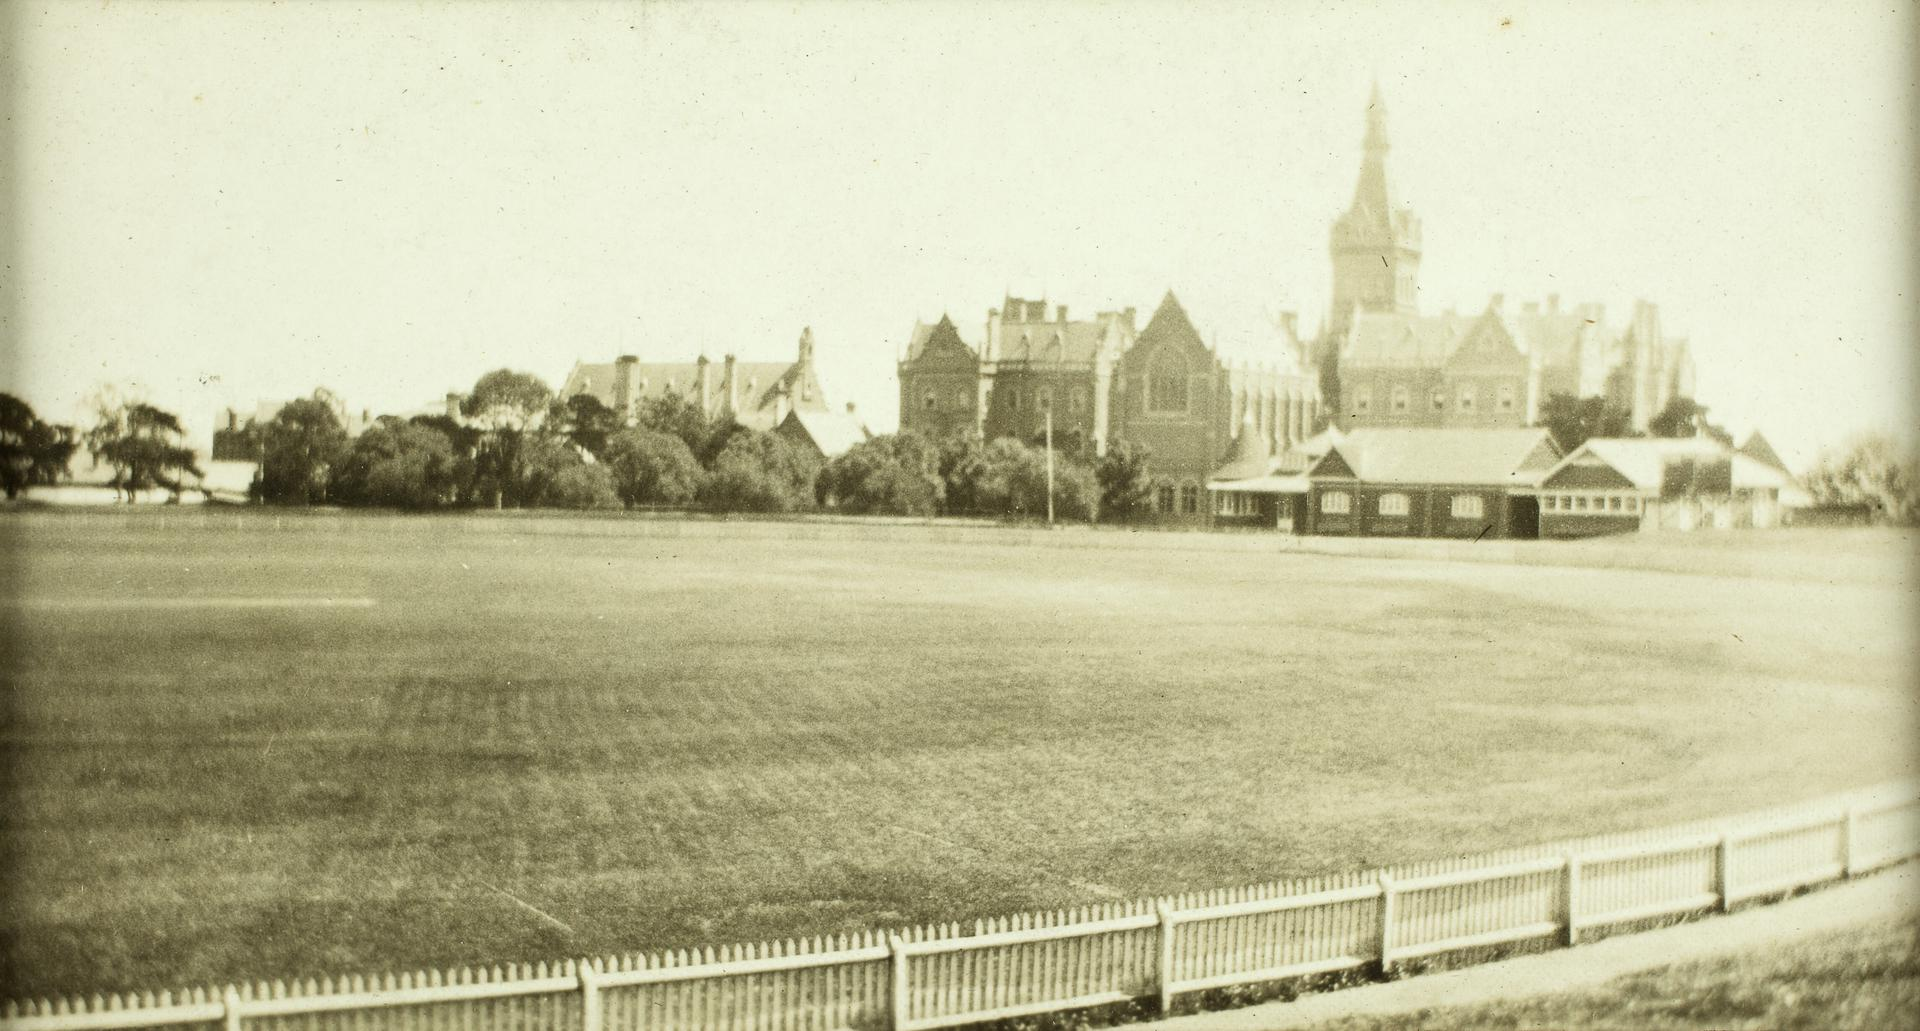 University oval in the 1920s